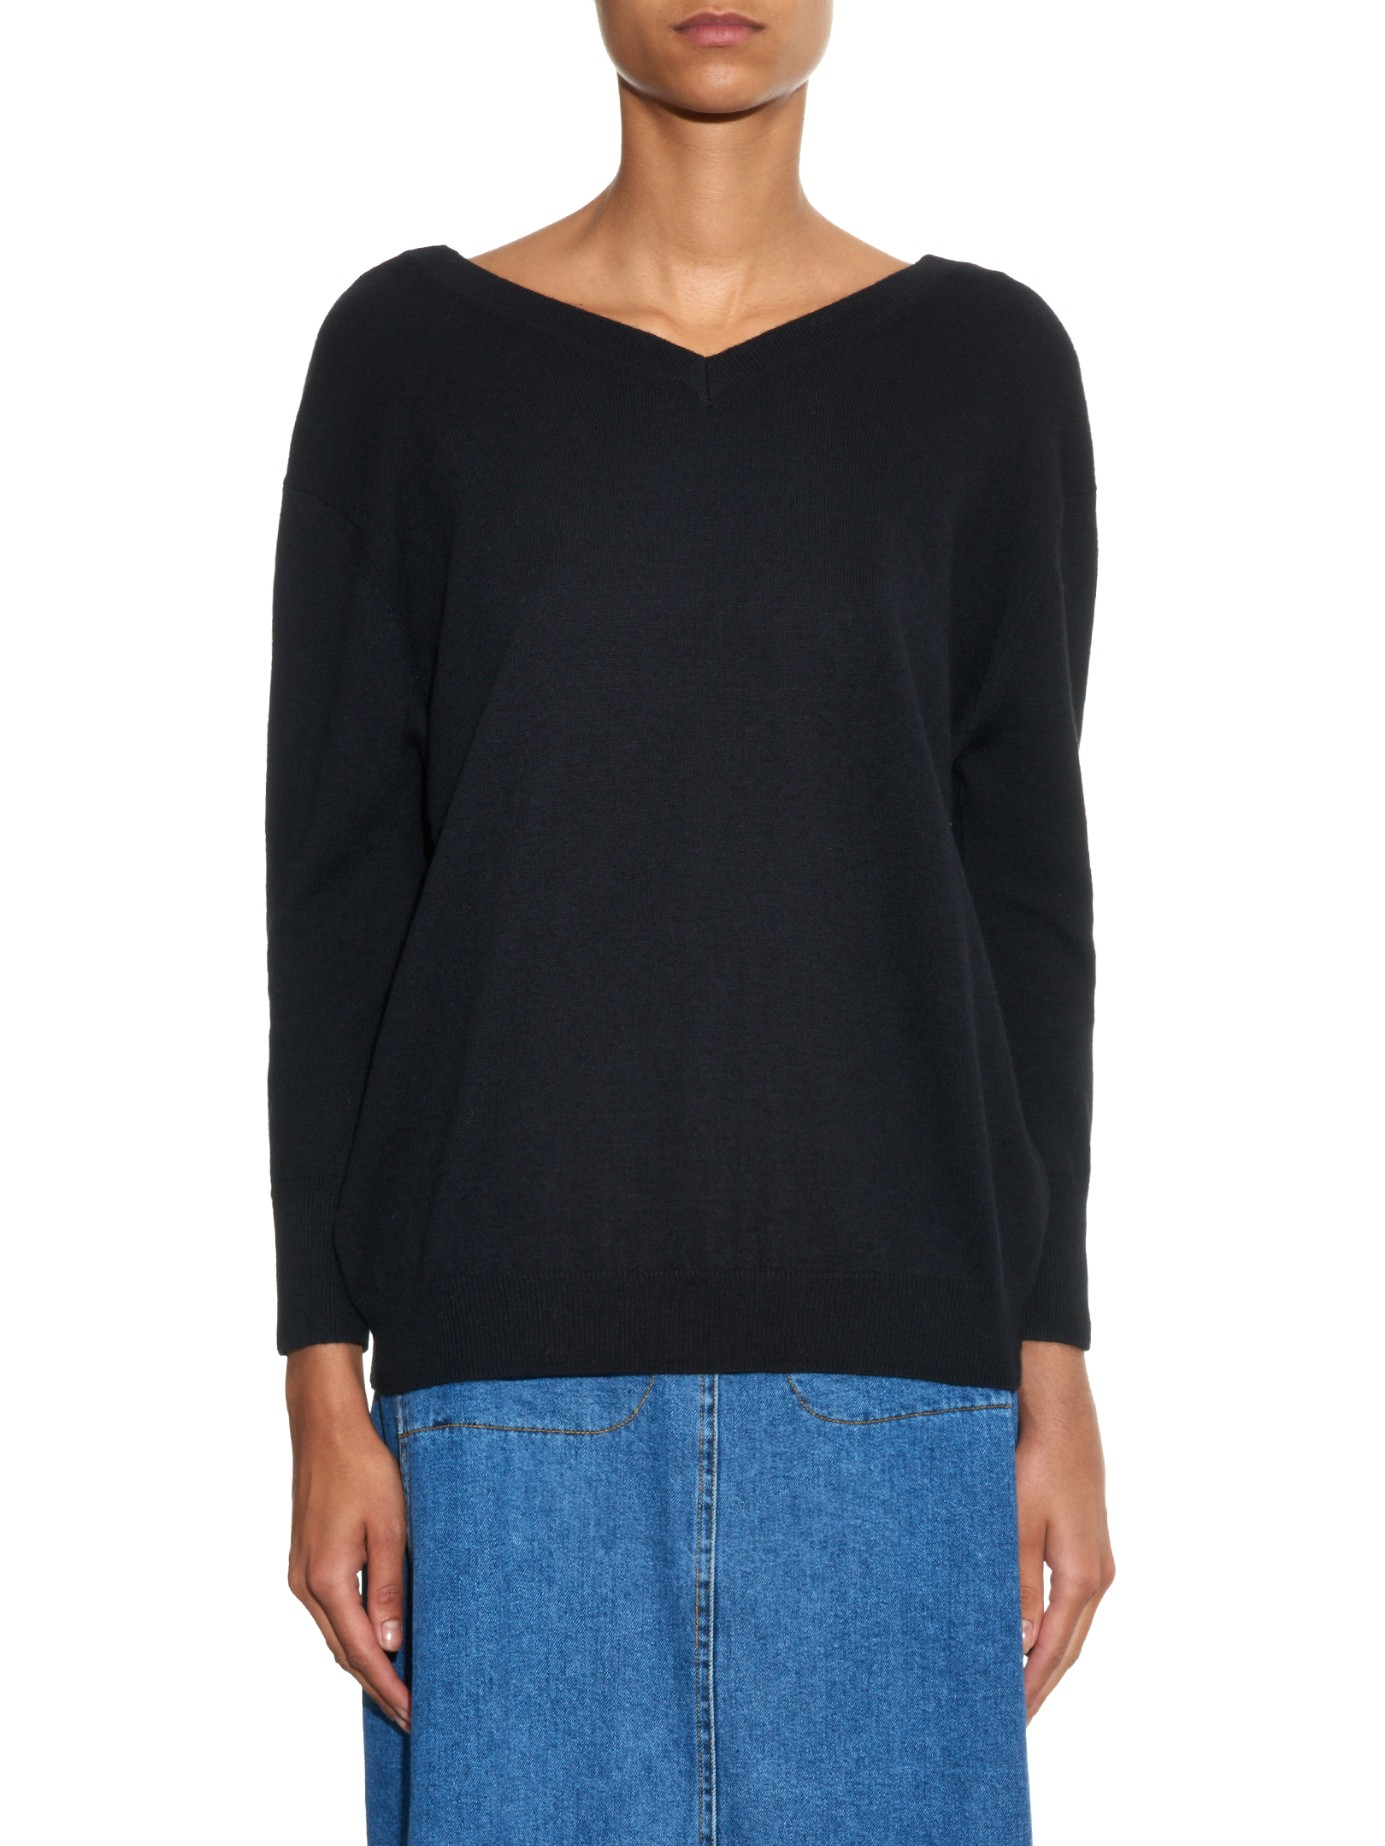 Étoile isabel marant Kinsey Cotton And Wool-blend Sweater in Black ...